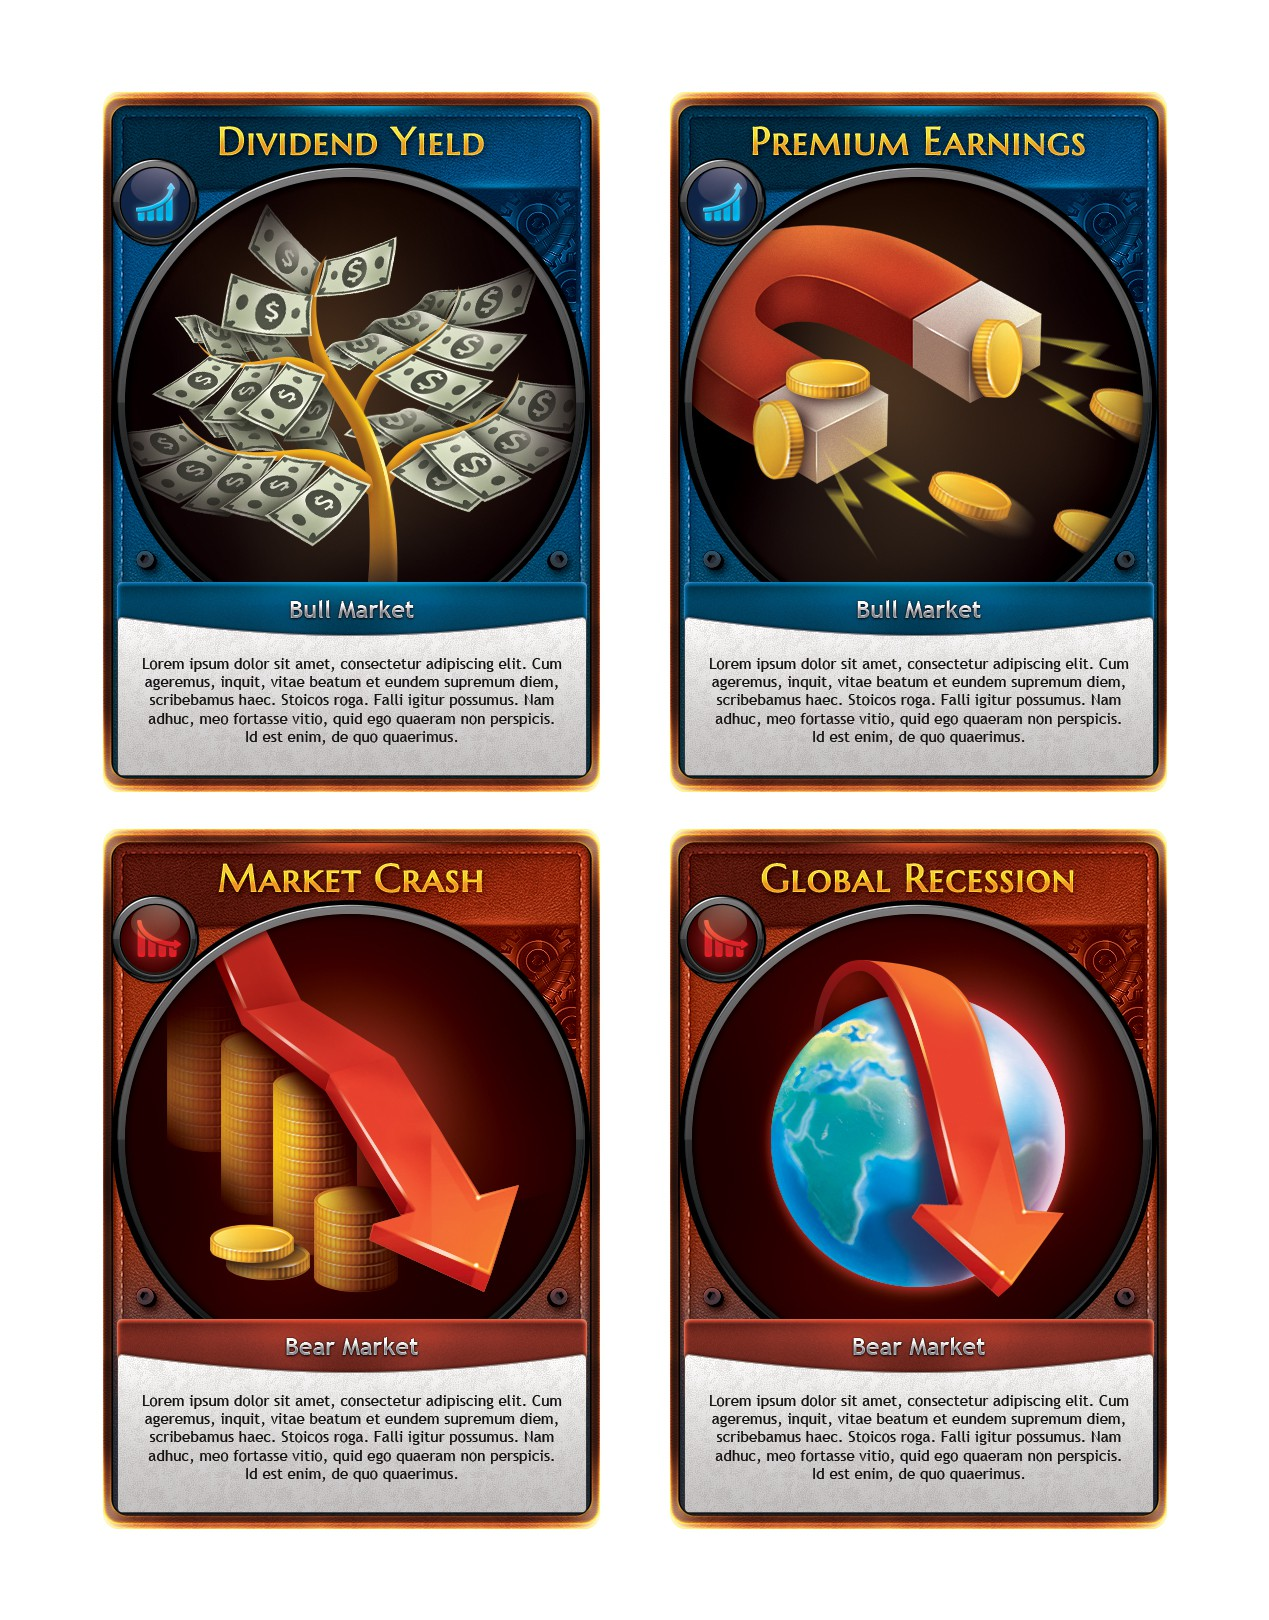 Impactful illustrations for a new strategy card game